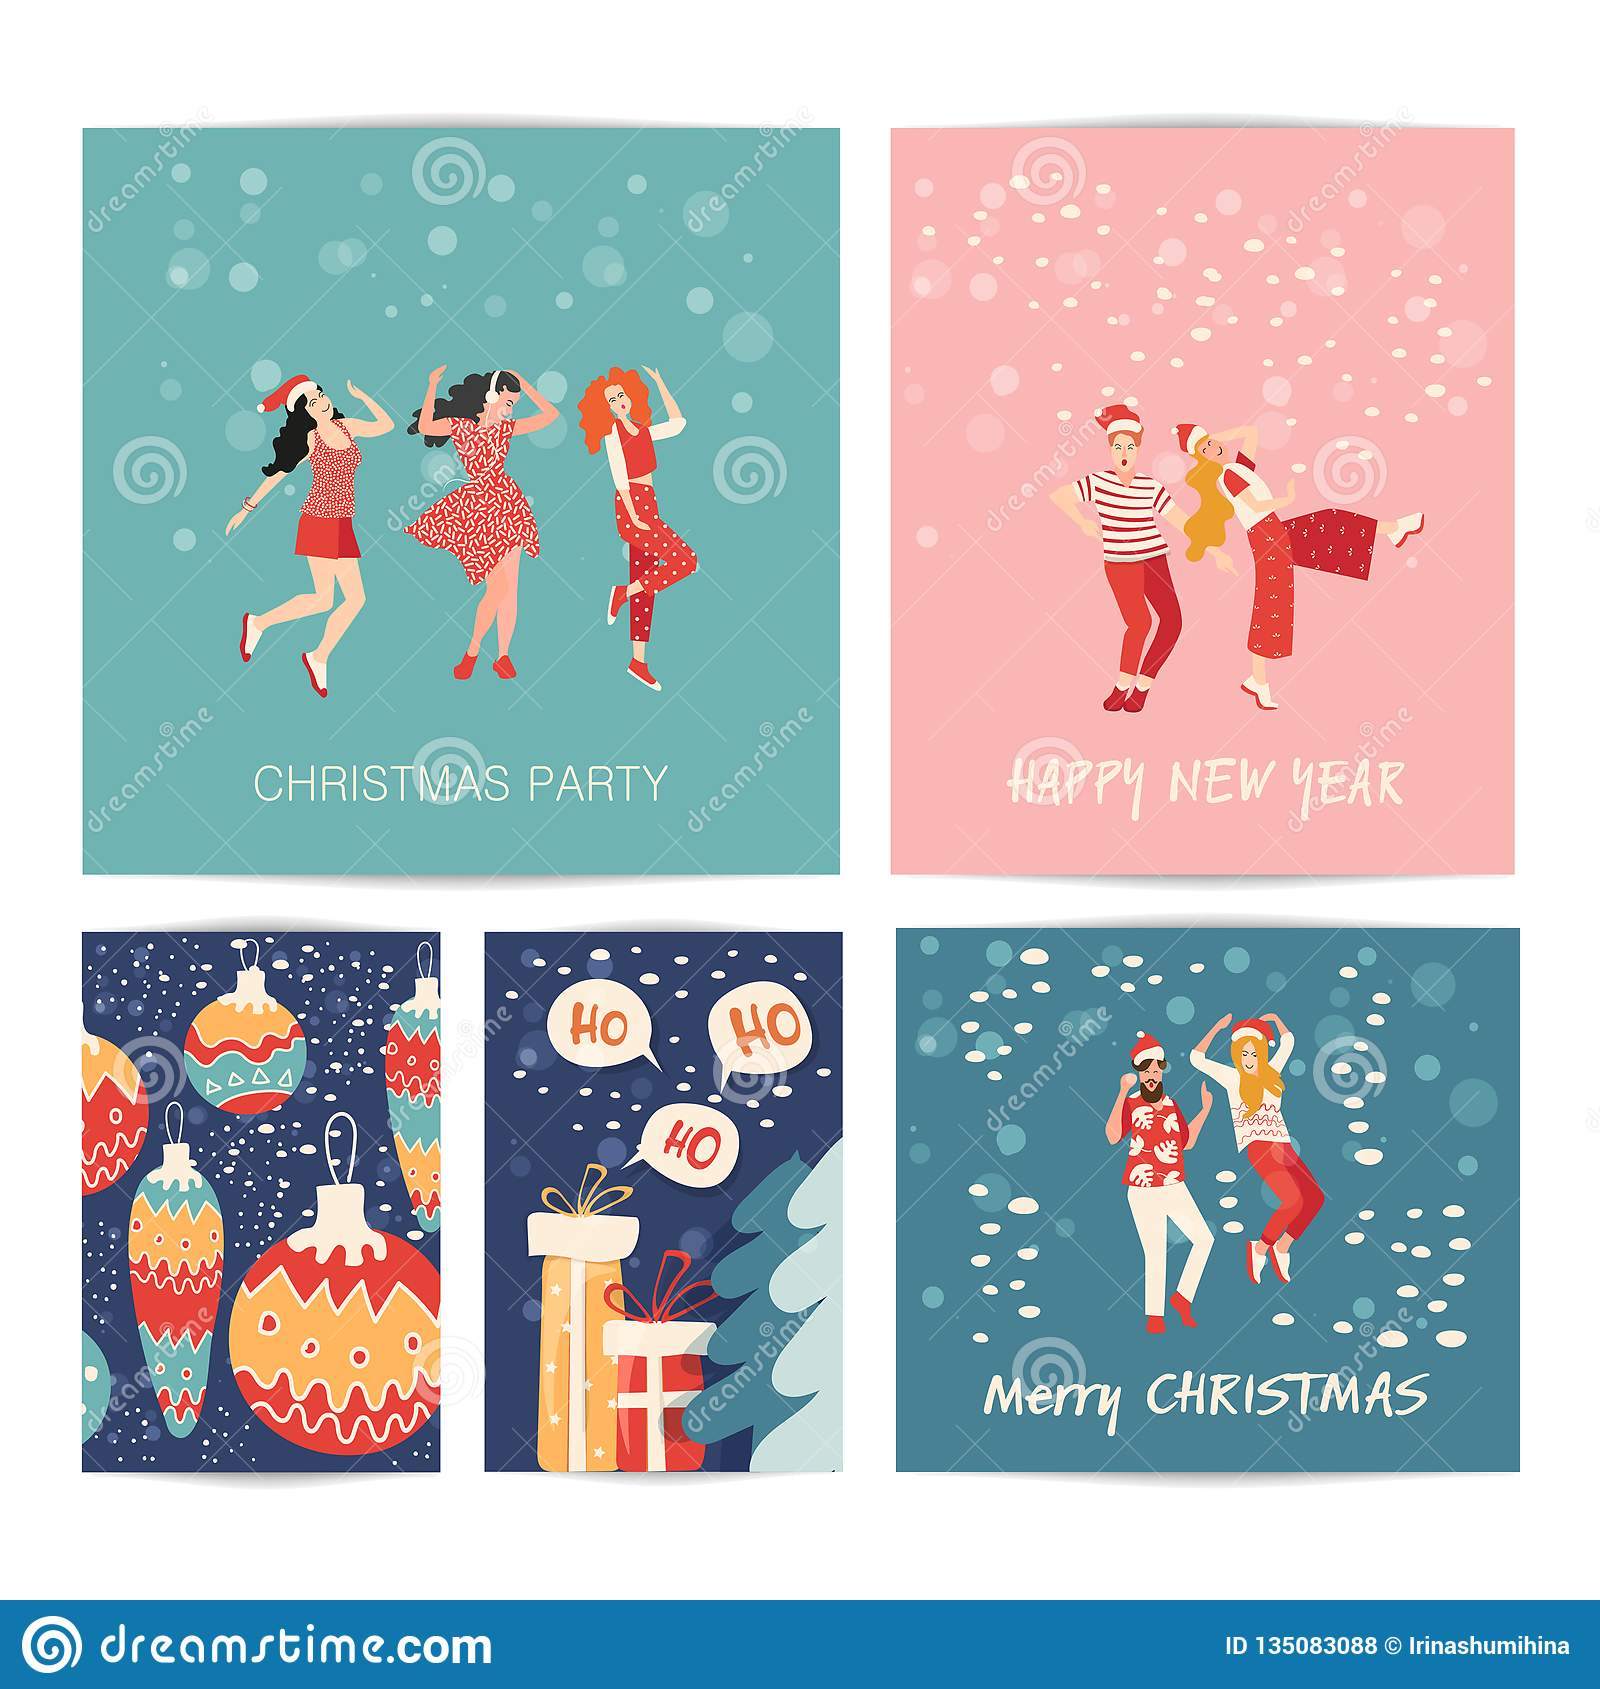 Christmas Carnival Poster.Vector Illustration New Year Party Carnival Festival